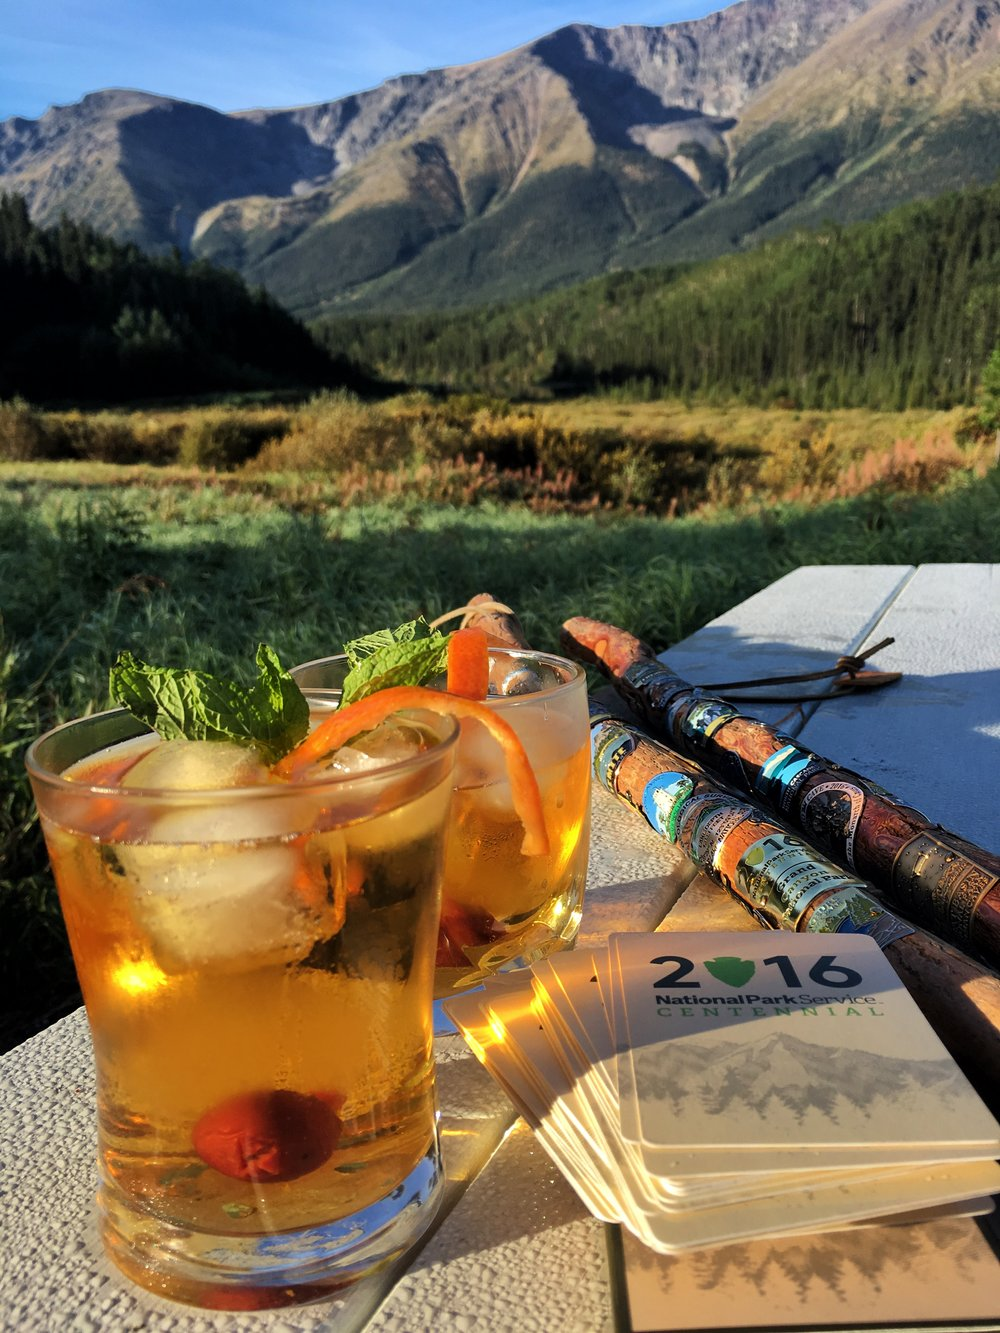 The Centennial Cocktail, created by Stefanie Payne and Jonathan Irish to celebrate the centennial anniversary of the U.S. National Park Service on August 25, 2016.